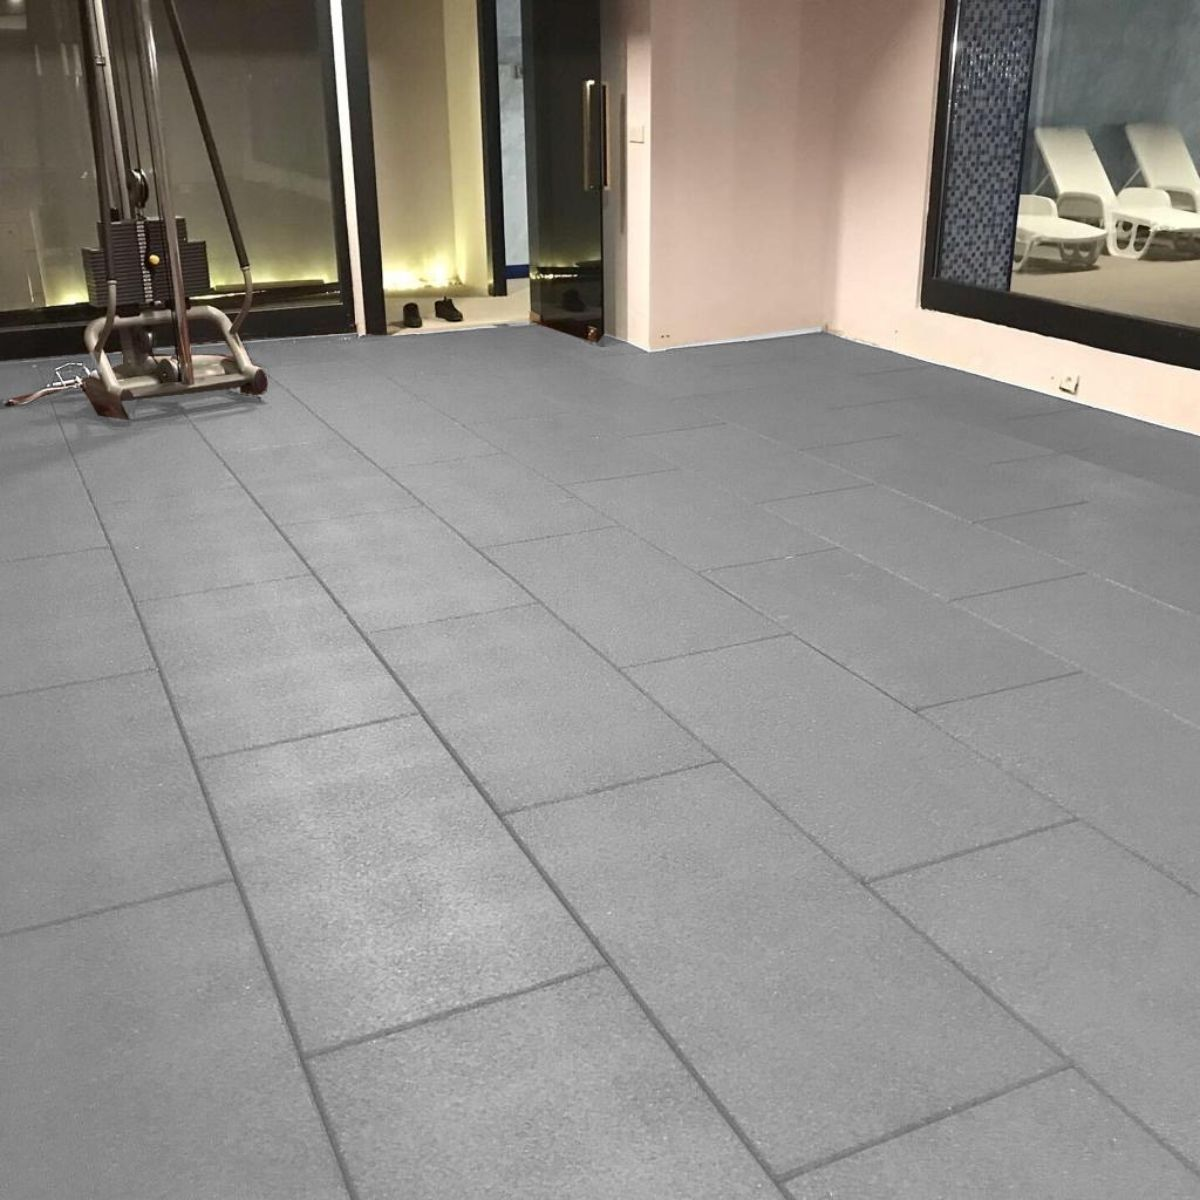 Flatline BeFit Grey Rubber Gym Flooring 1m x 50cm x 20mm